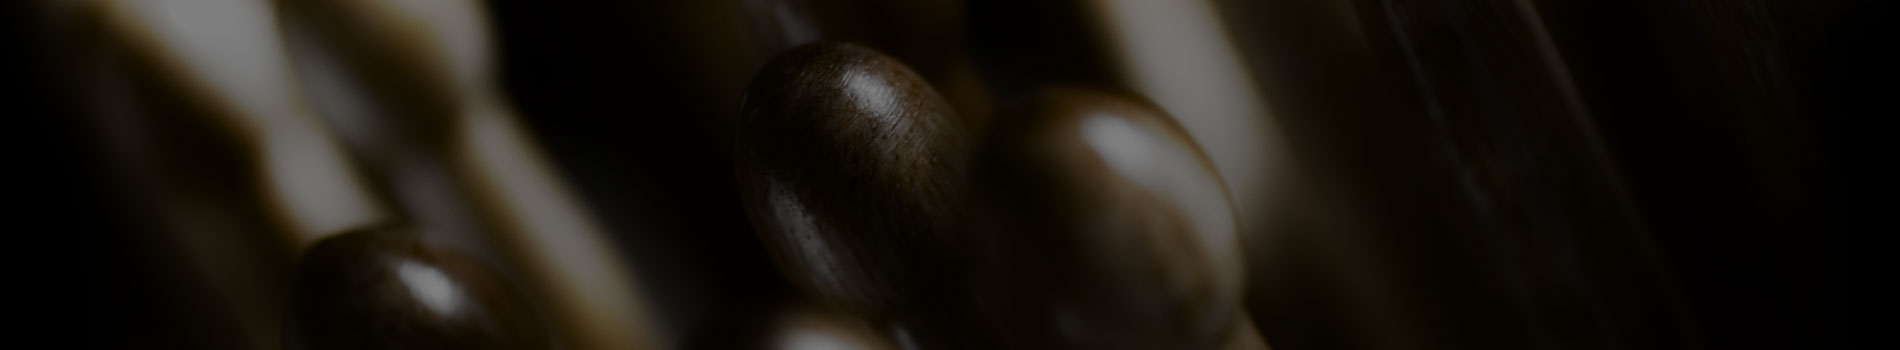 Image of Stick Tips Up Close